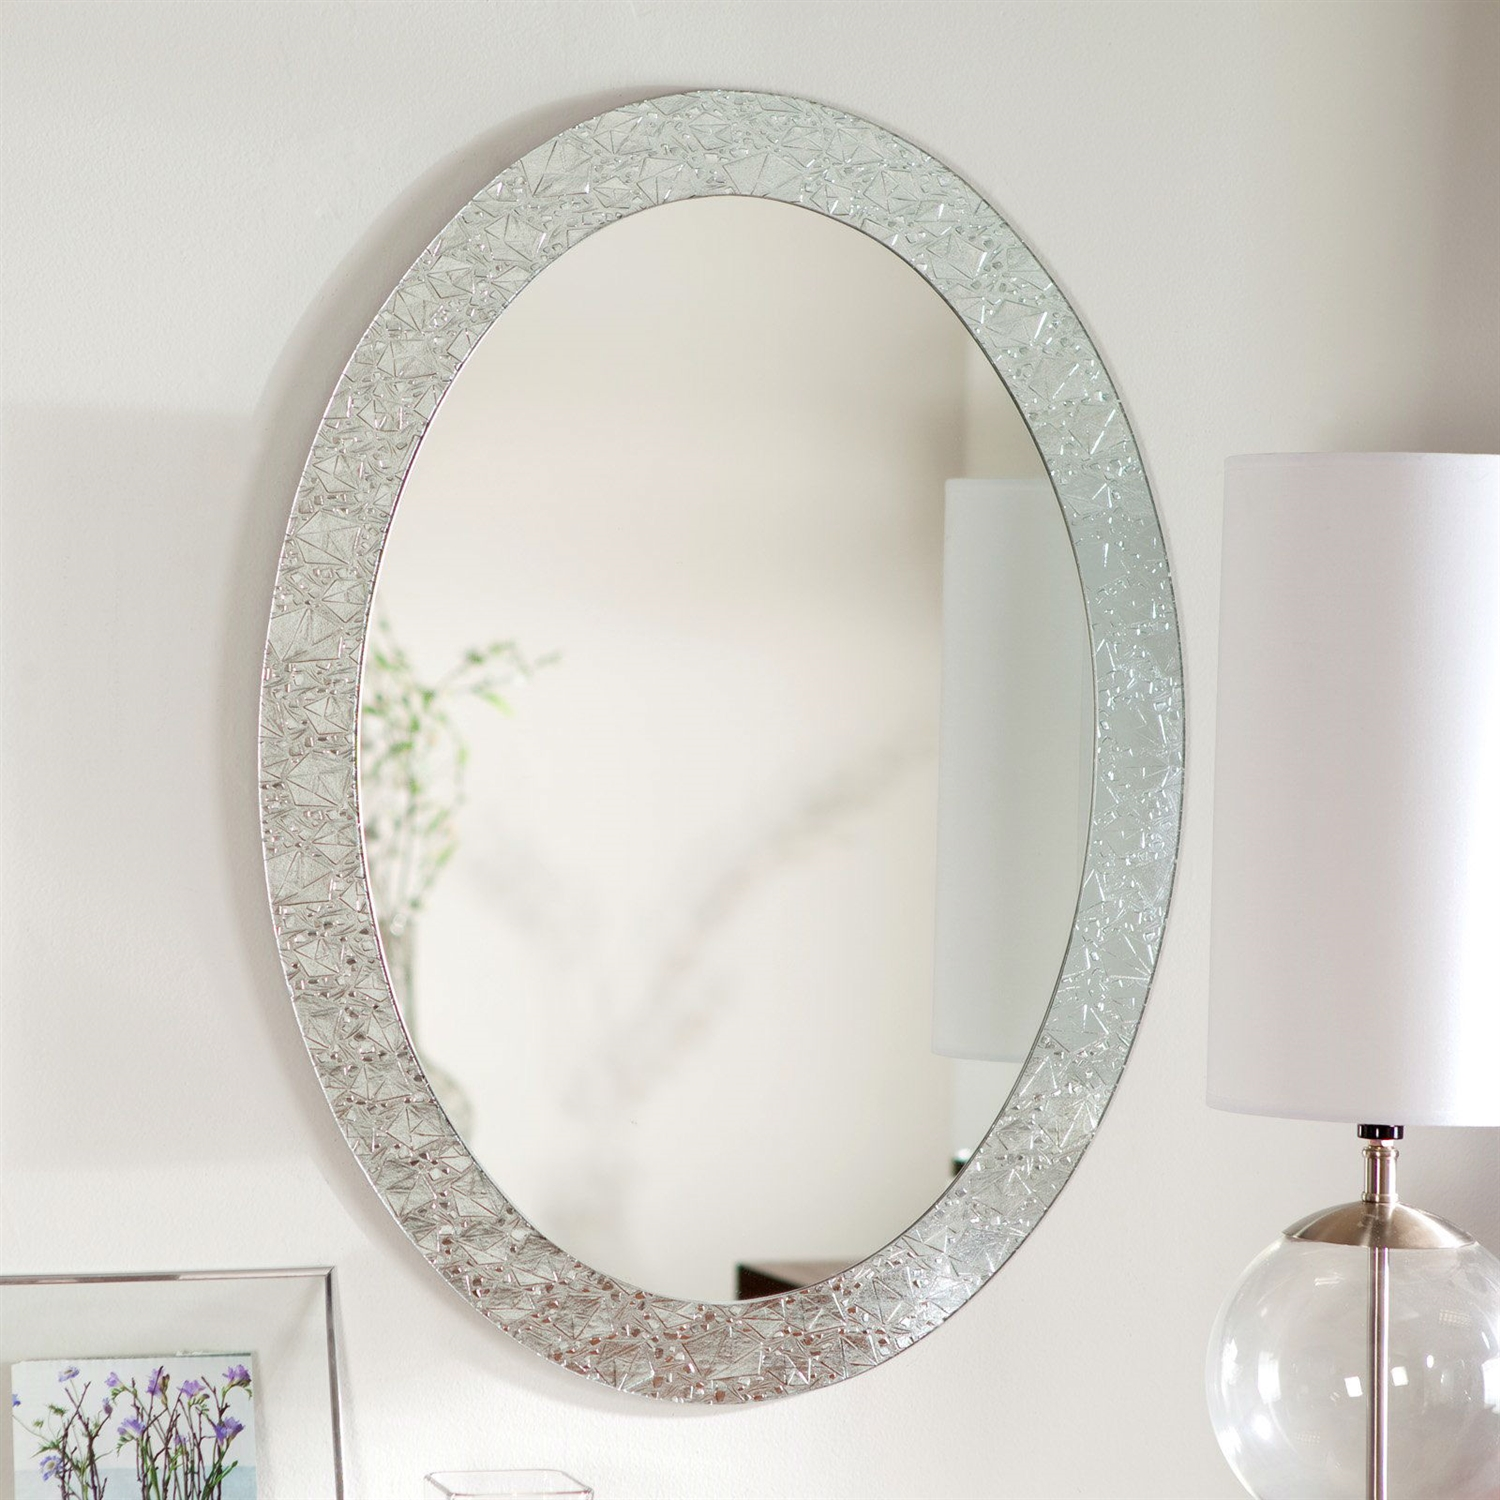 Oval Frame-less Bathroom Vanity Wall Mirror with Elegant Crystal ...